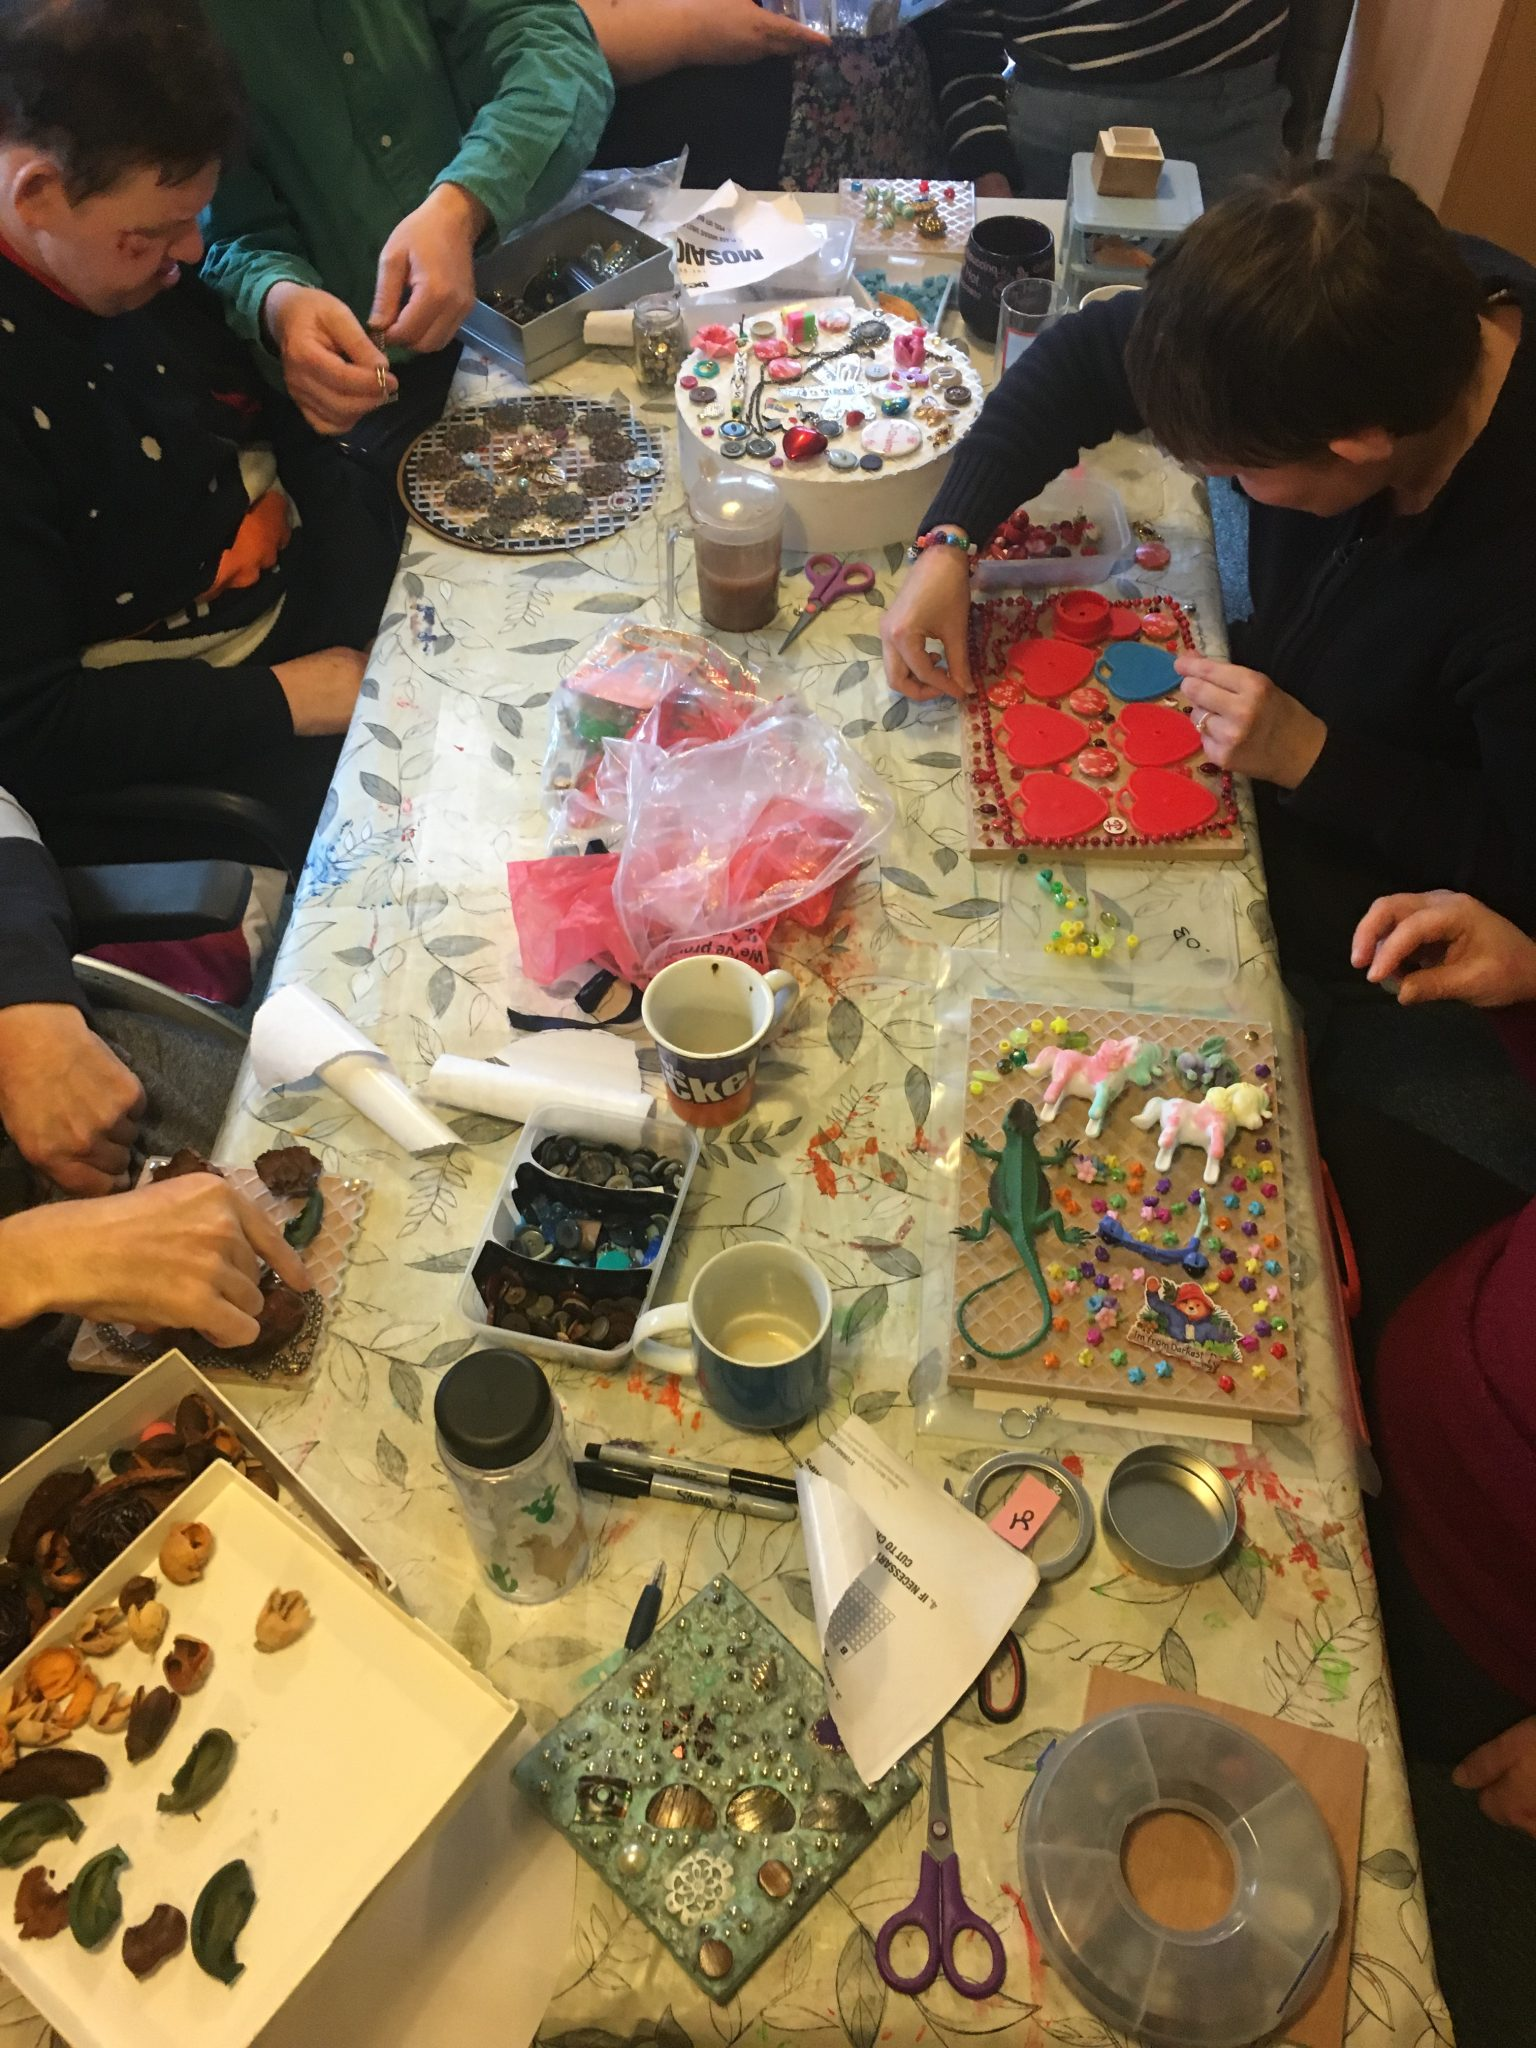 participants messily making art around a table